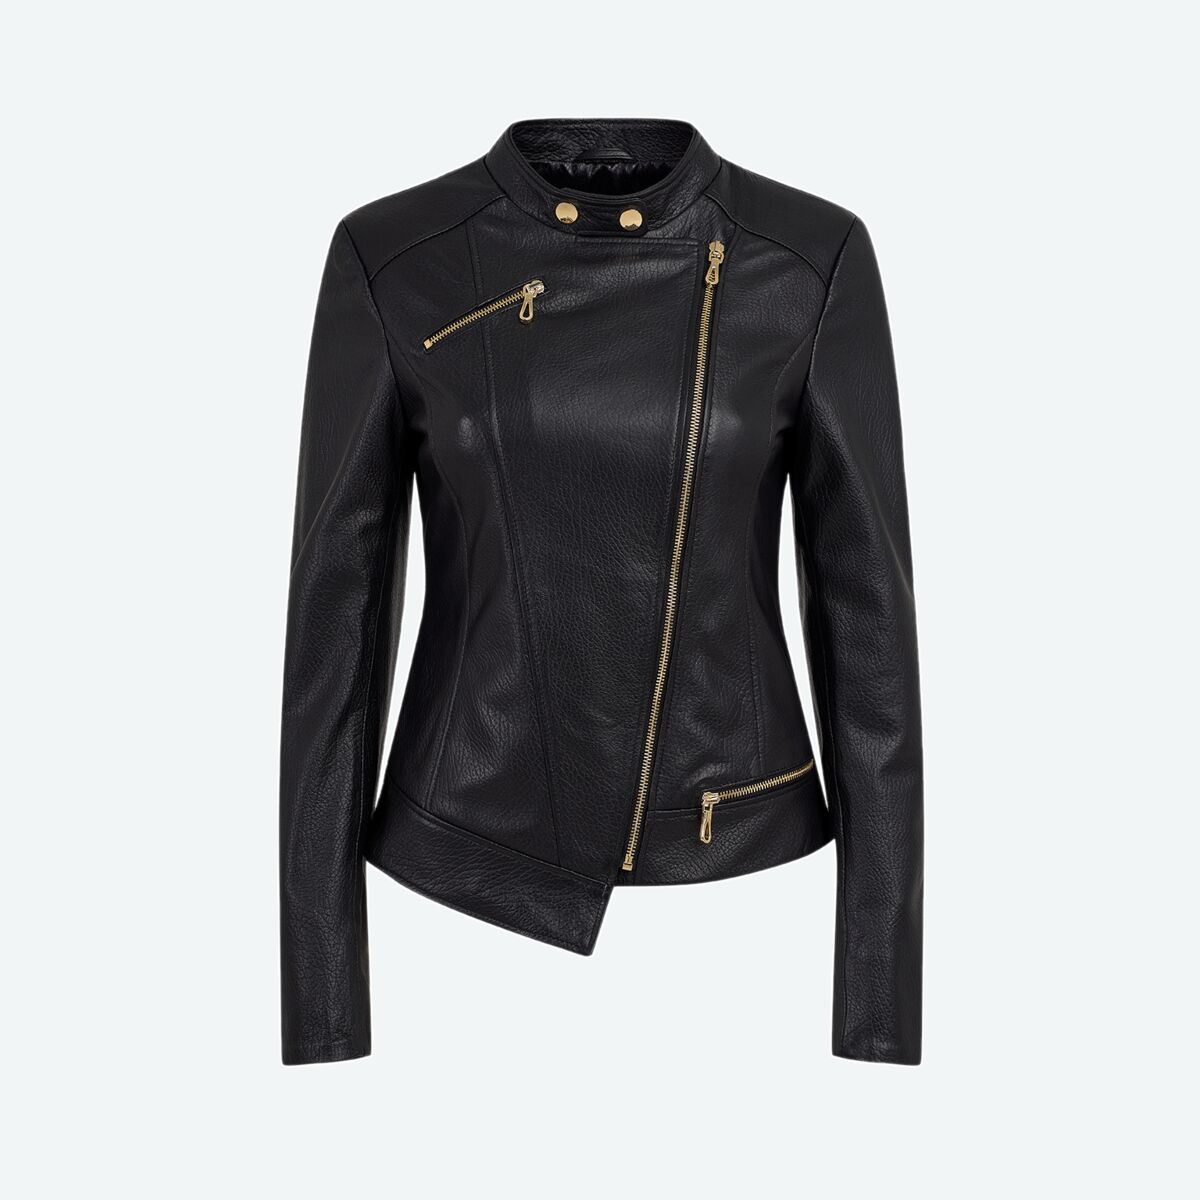 Women's Asymmetric Leather Jacket - Black